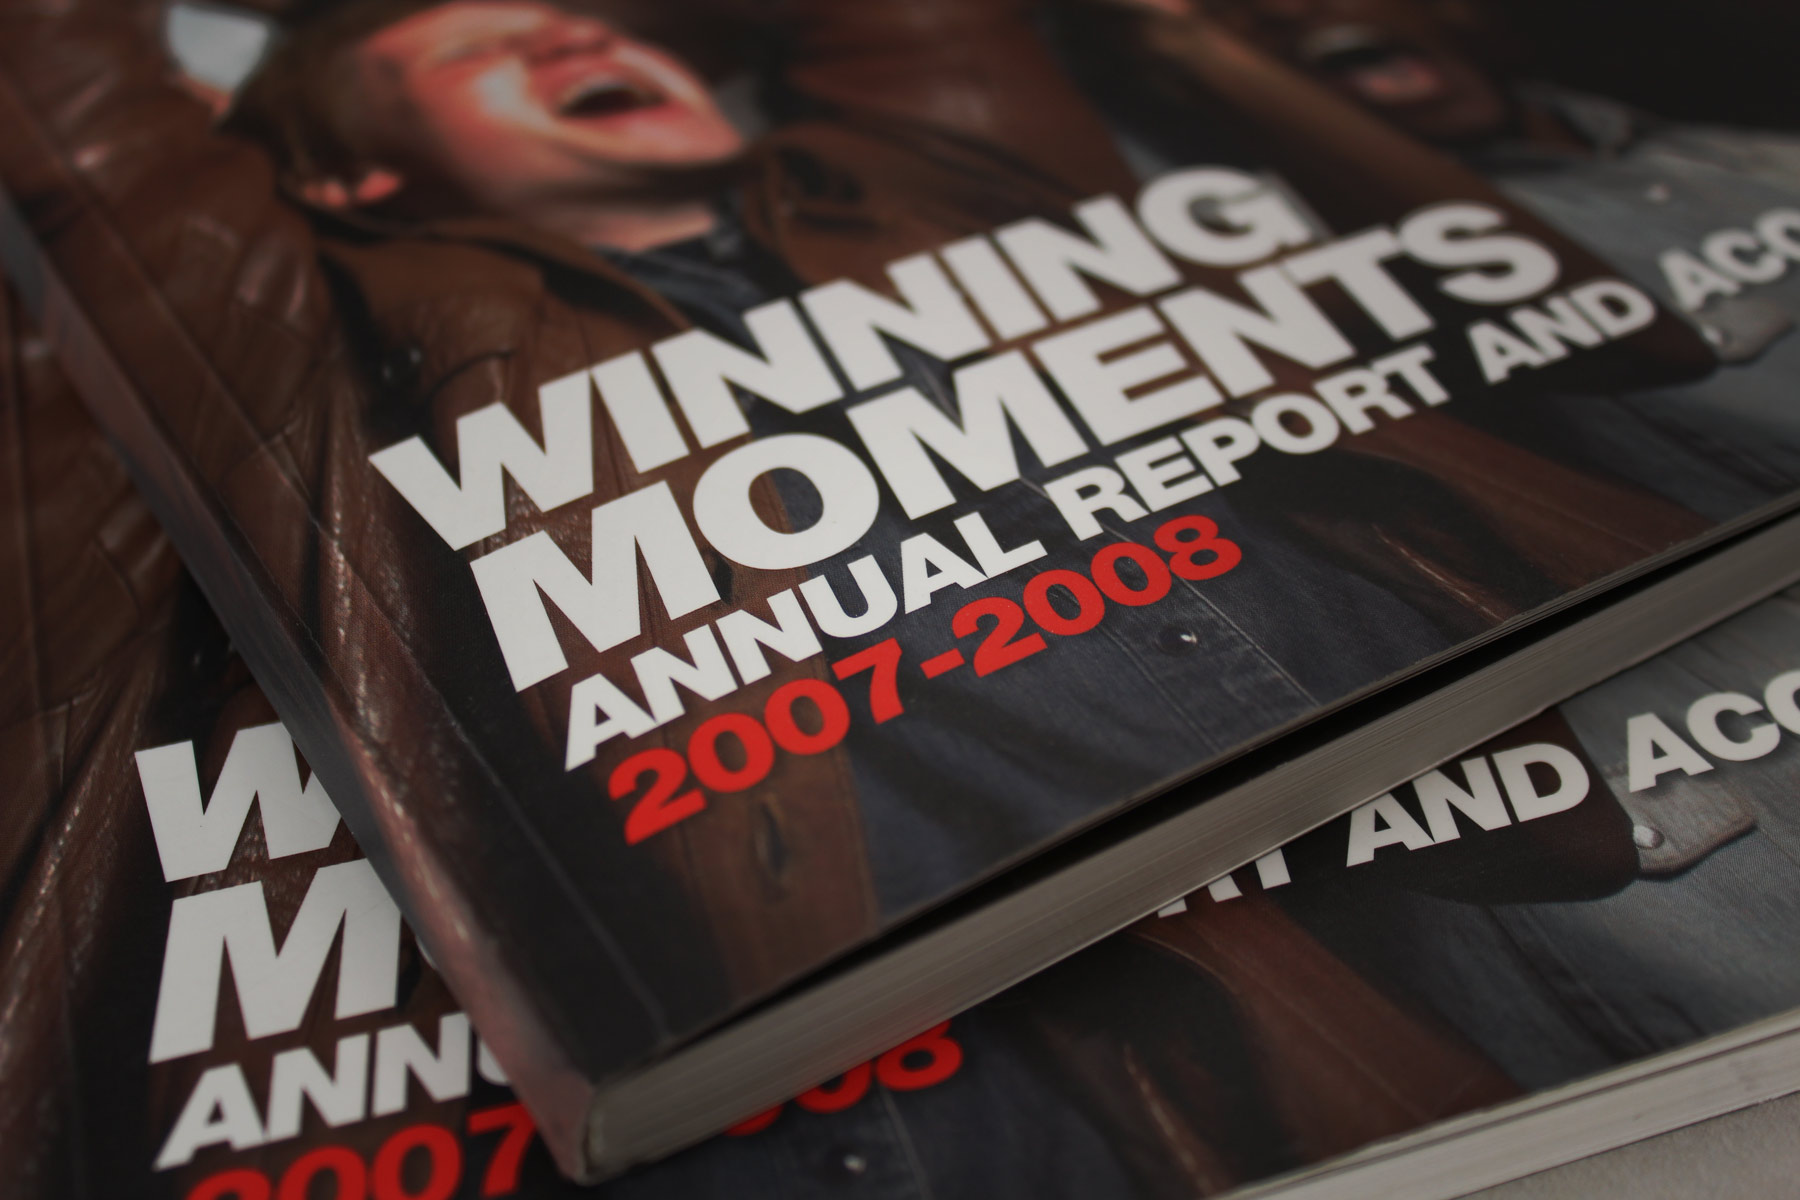 The Winning Moments moniker reflects a good year financially for the business.